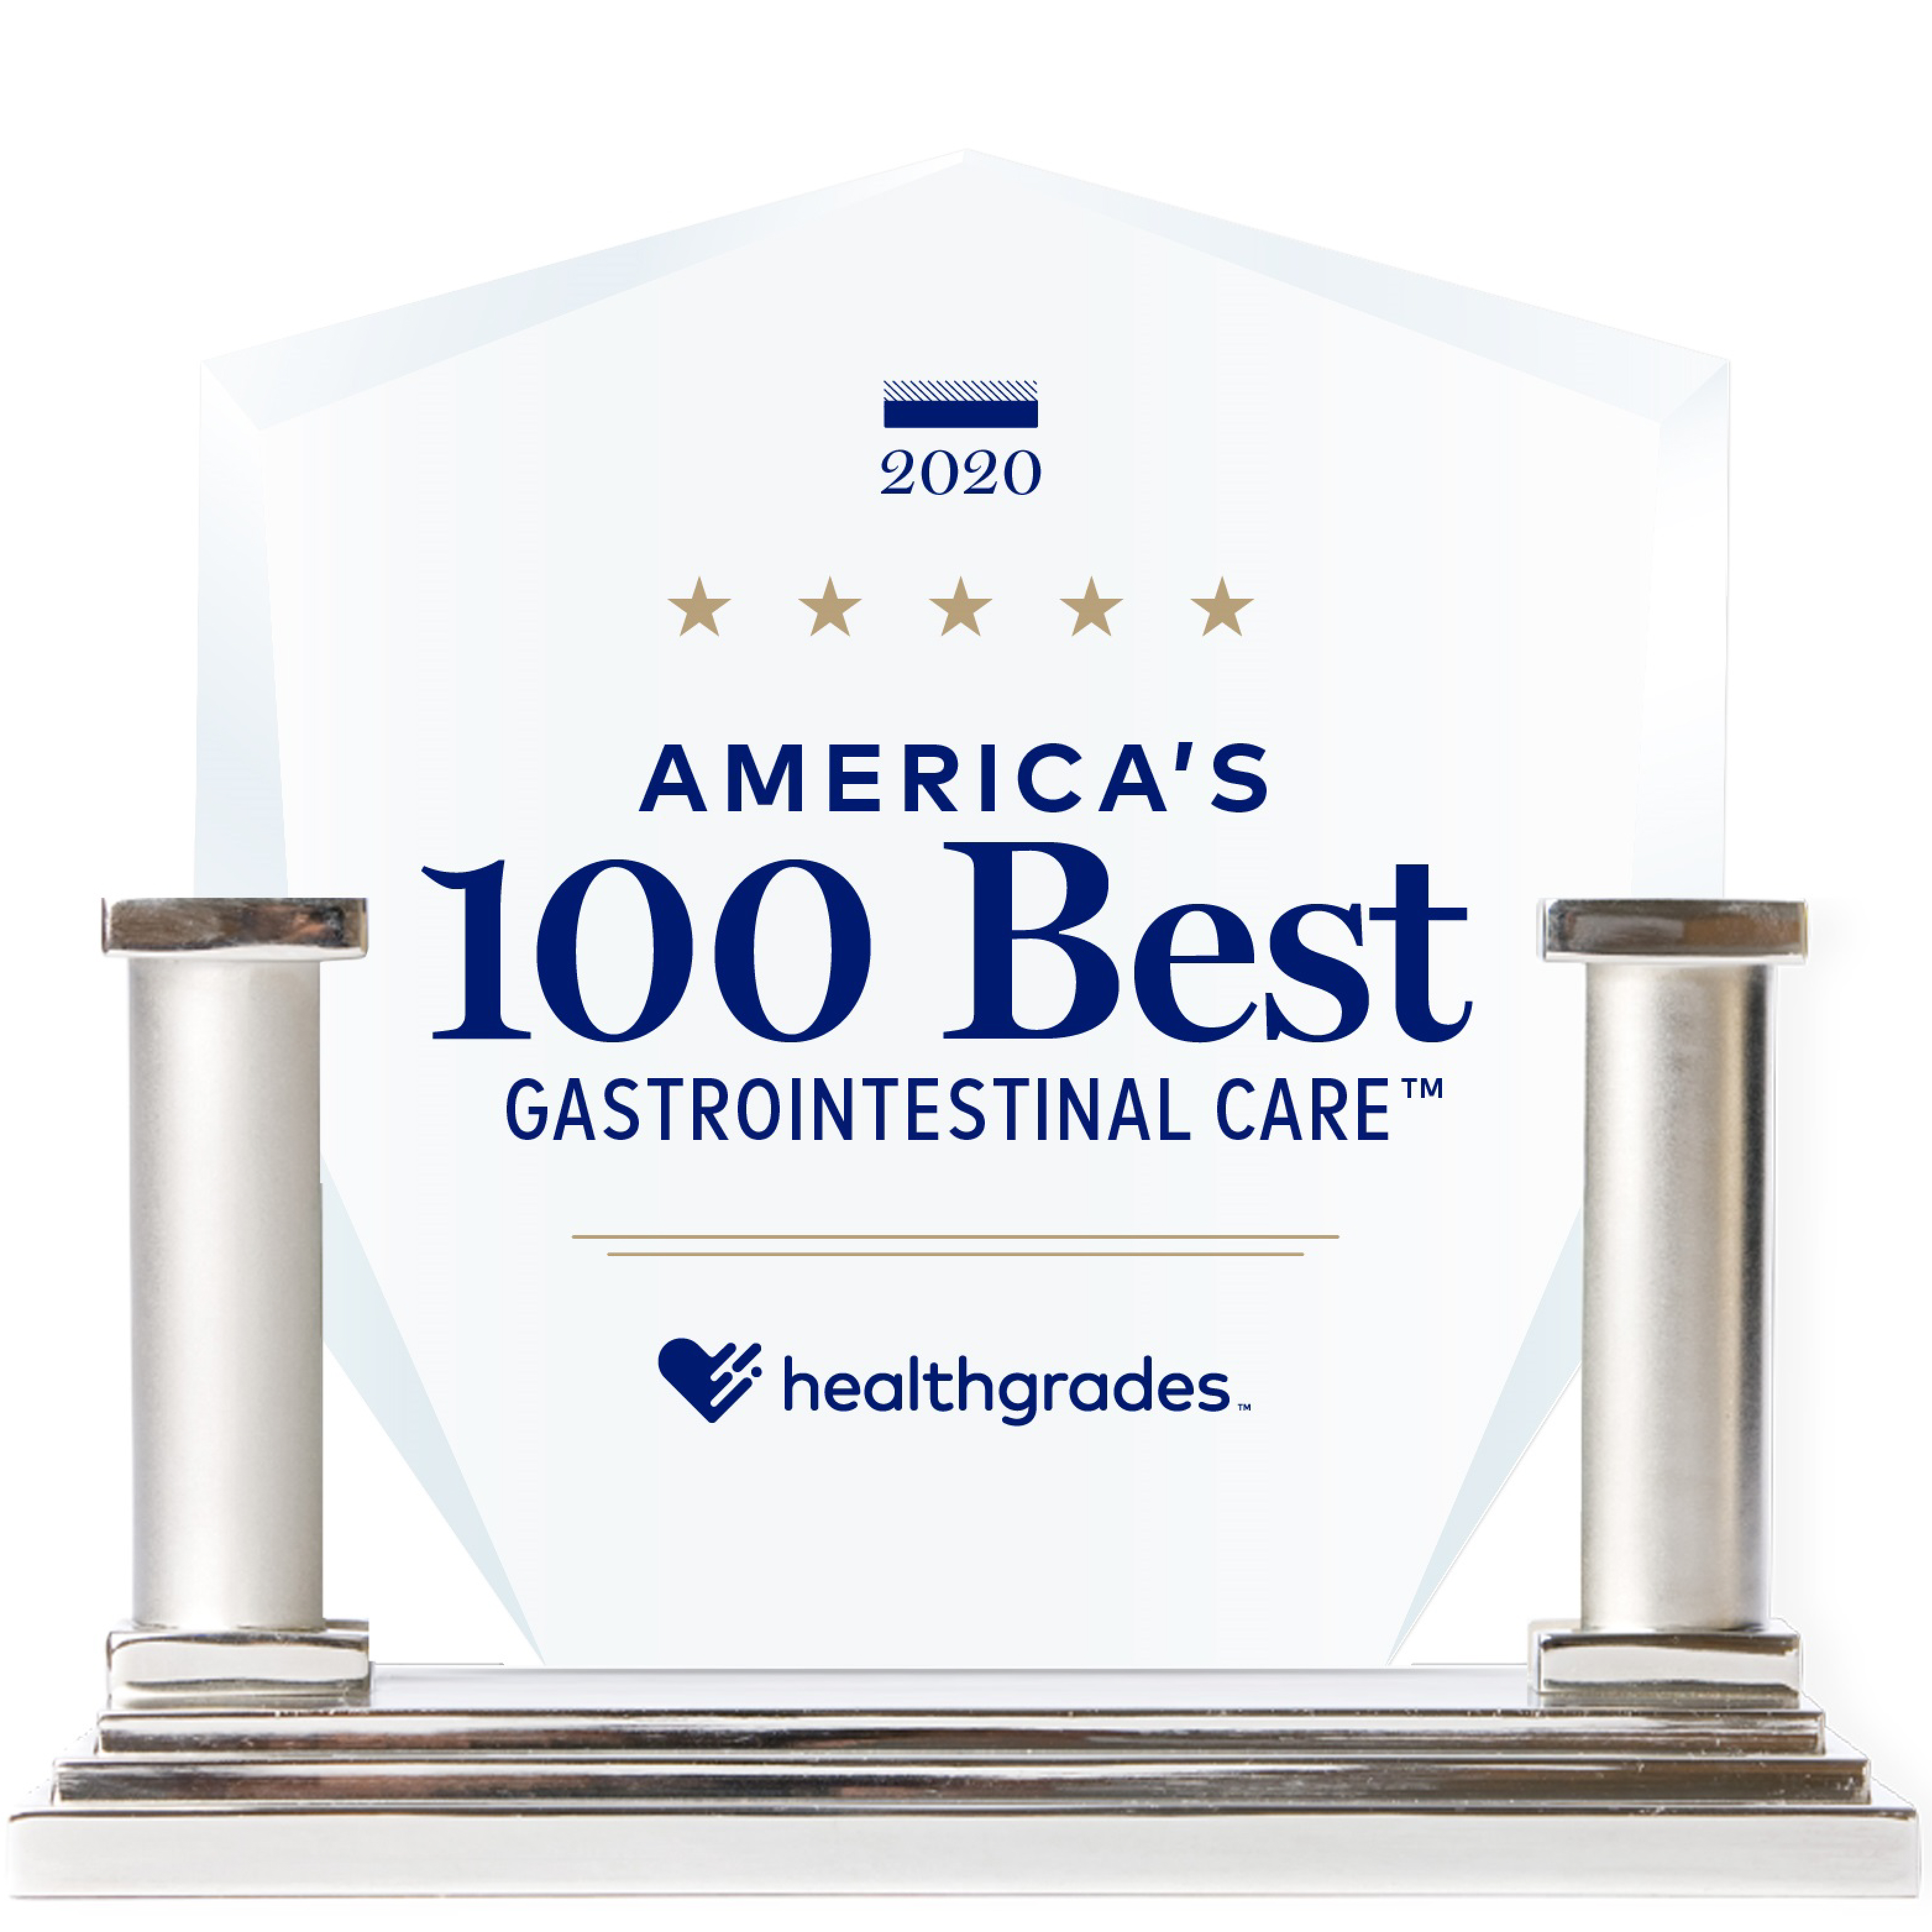 Americas 100 Best Gastrointestinal Care Trophy 2020